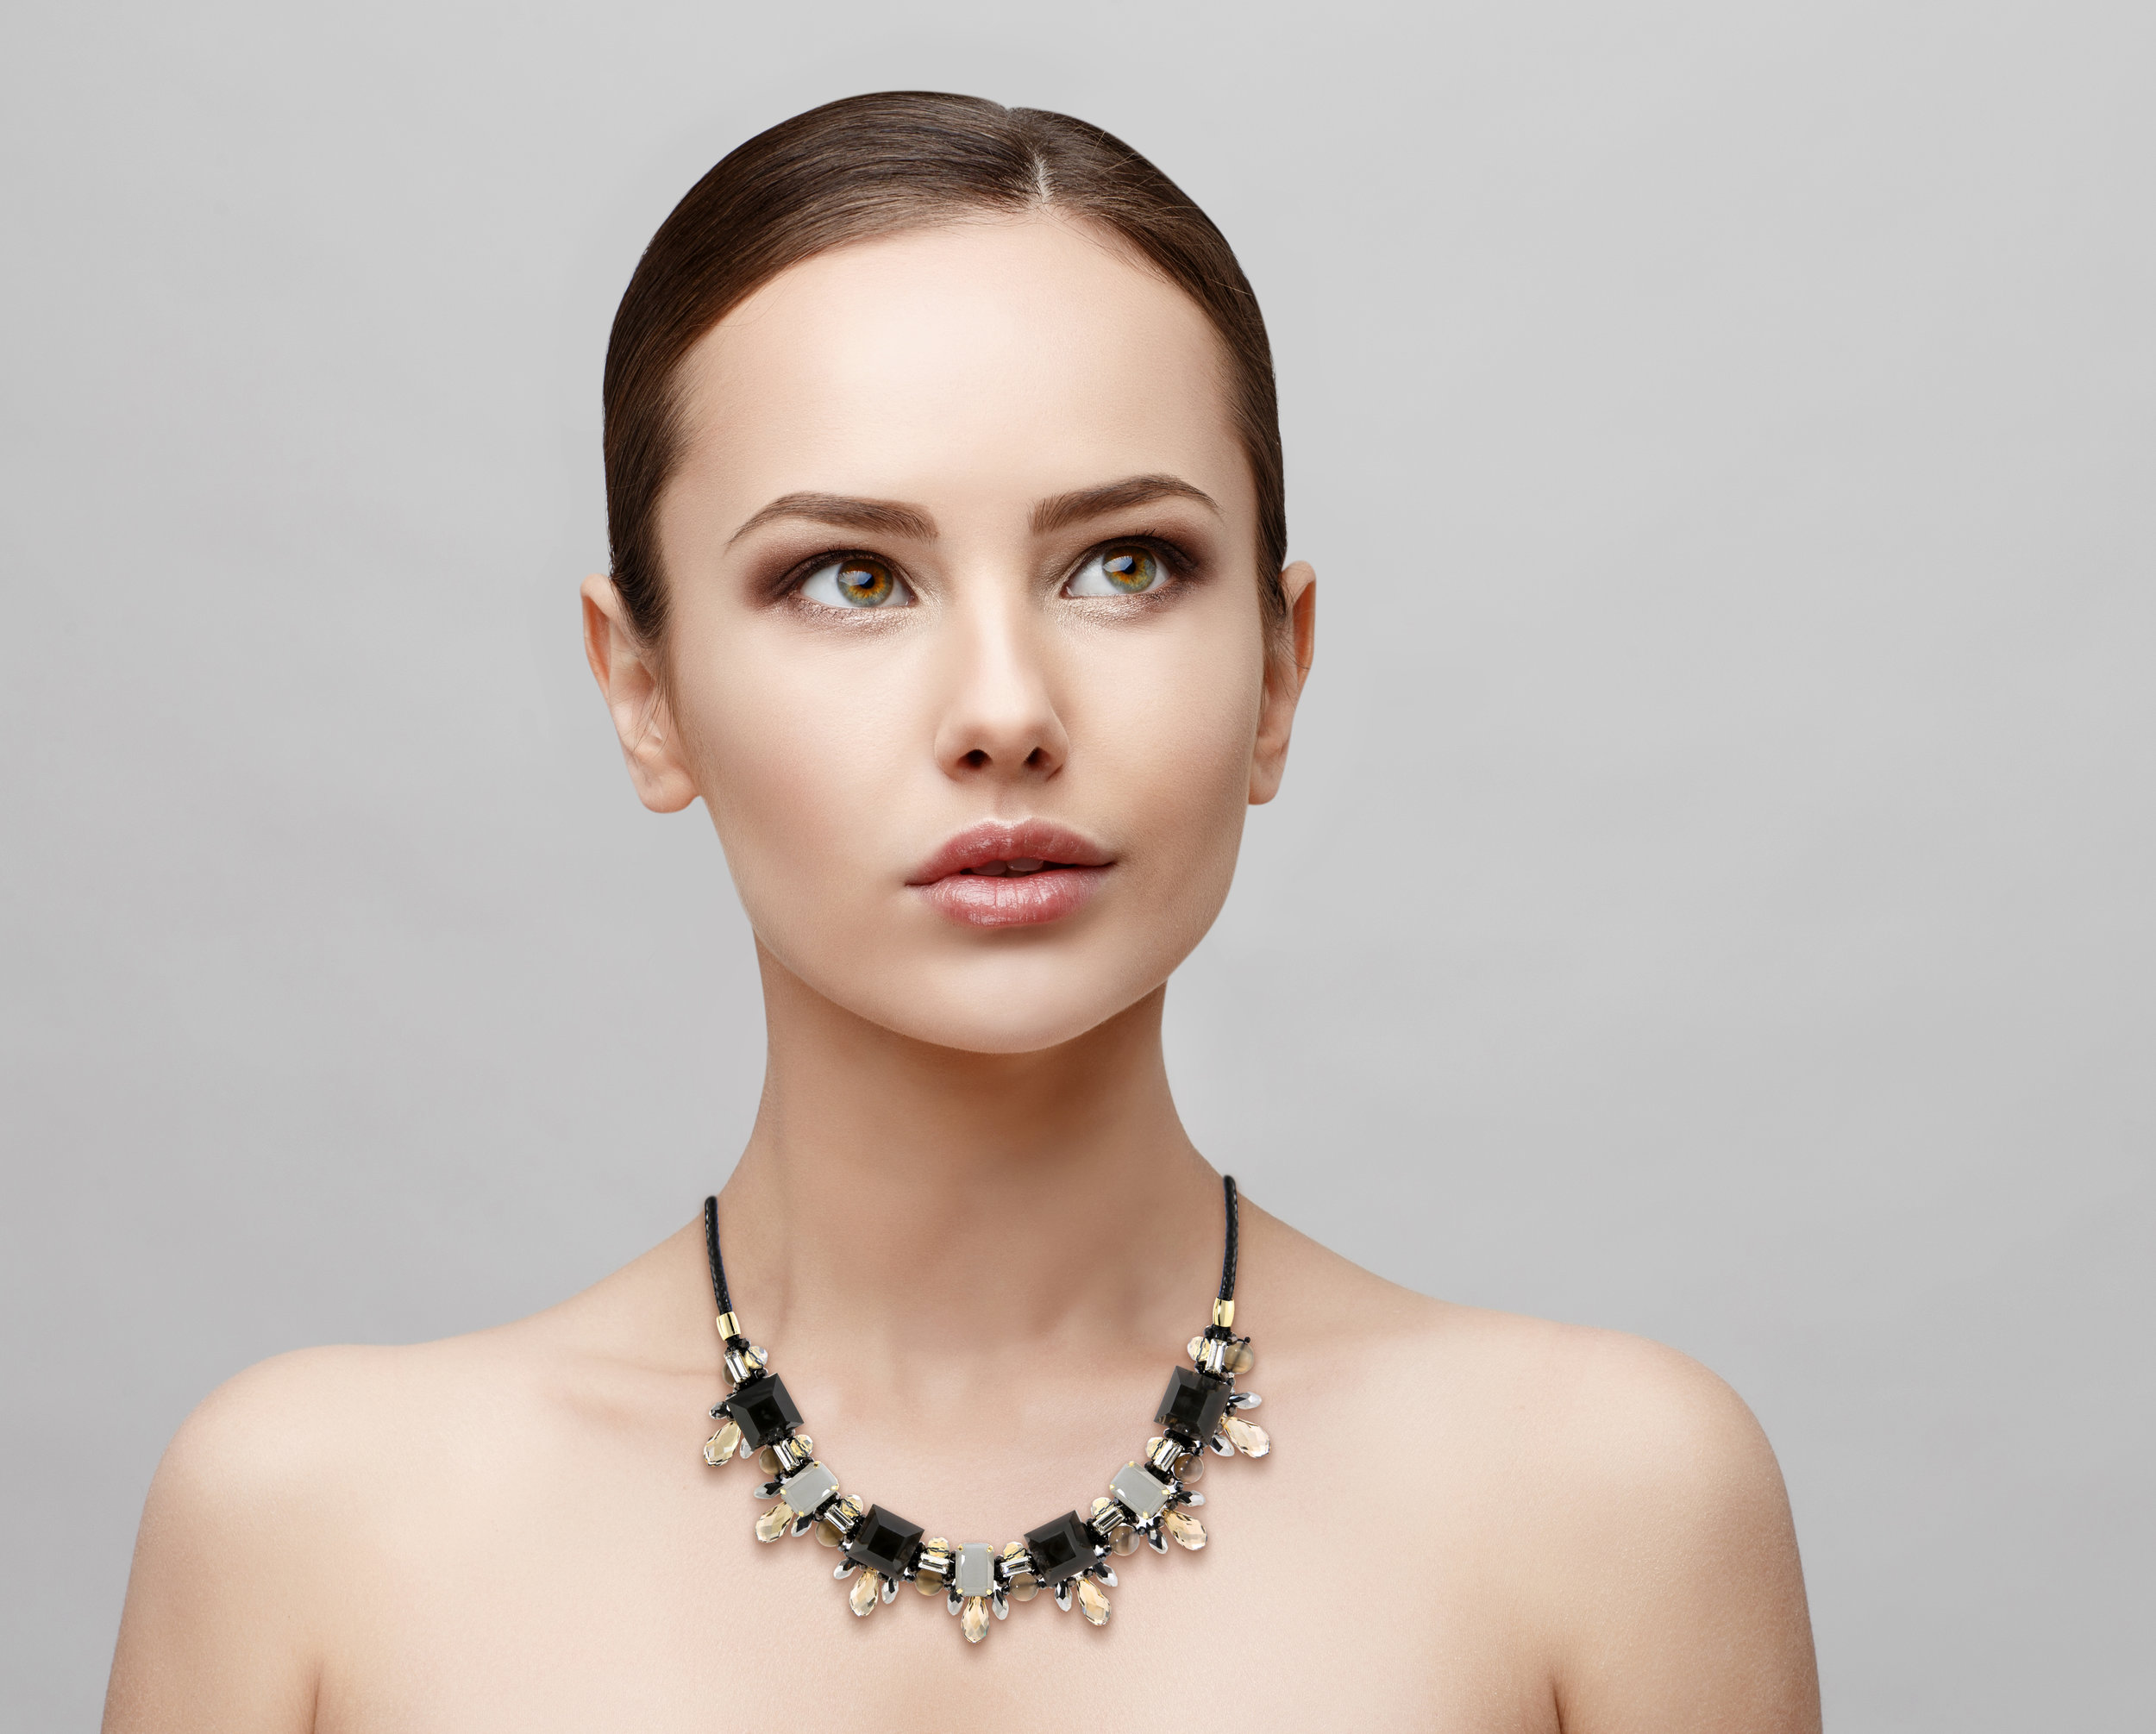 Model-CN11-Necklace (deleted 3e62dce1f5c15cac174d8132170c3c53).jpg